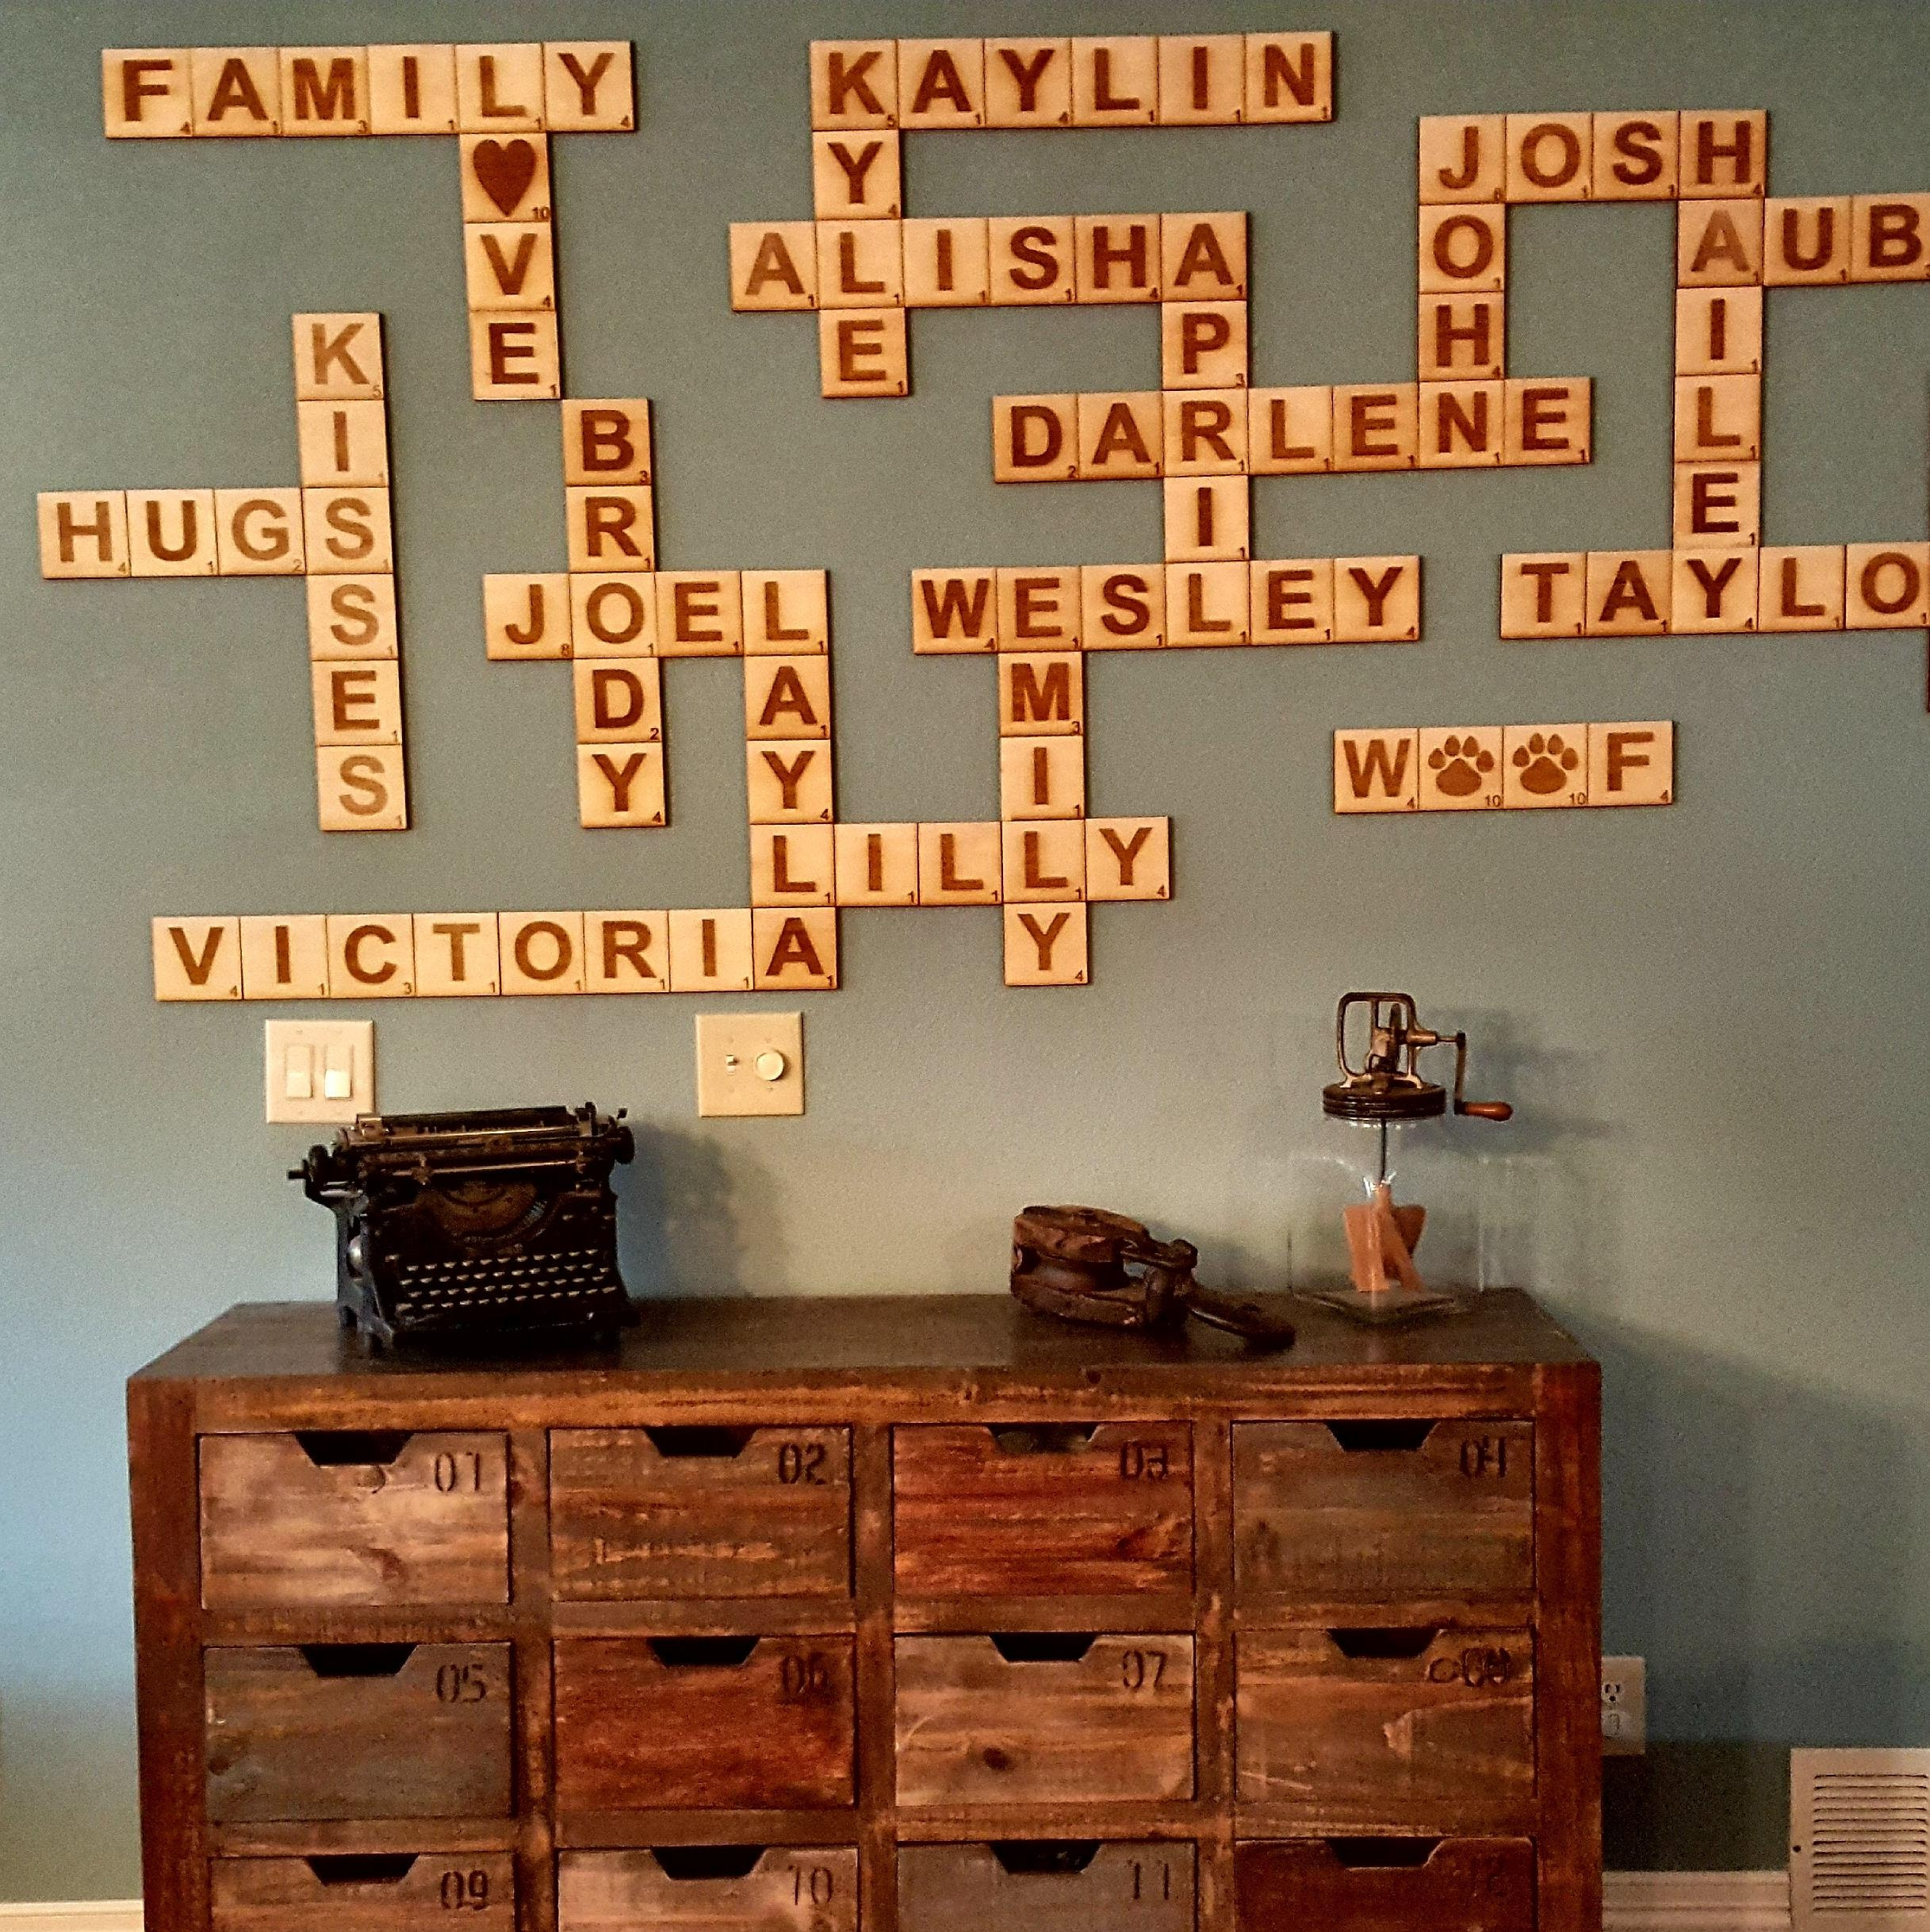 Scrabble Wall Tiles, Scrabble Letters, Scrabble Tiles, Scrabble Pertaining To Scrabble Letter Wall Art (Image 17 of 20)